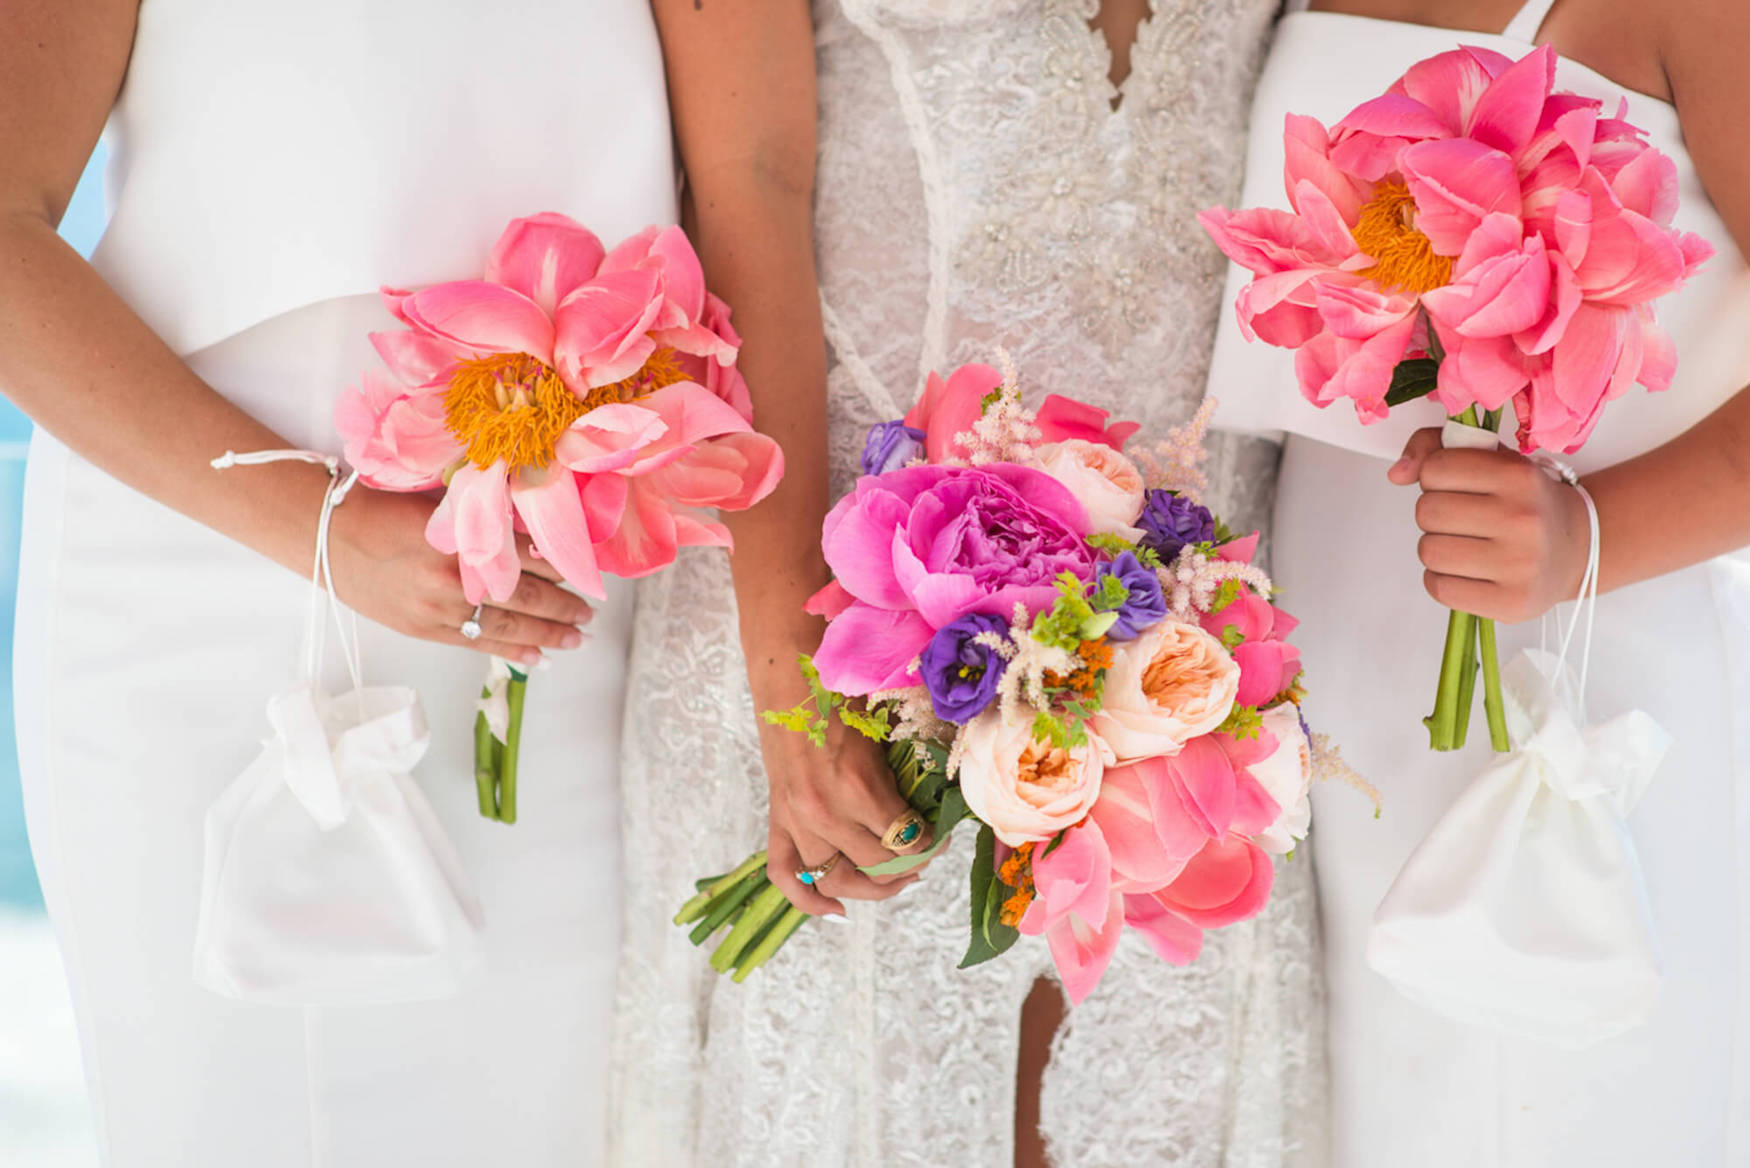 Colourful flowers wedding bouquet bridesmaids beach venue sunset view Galia Lahav